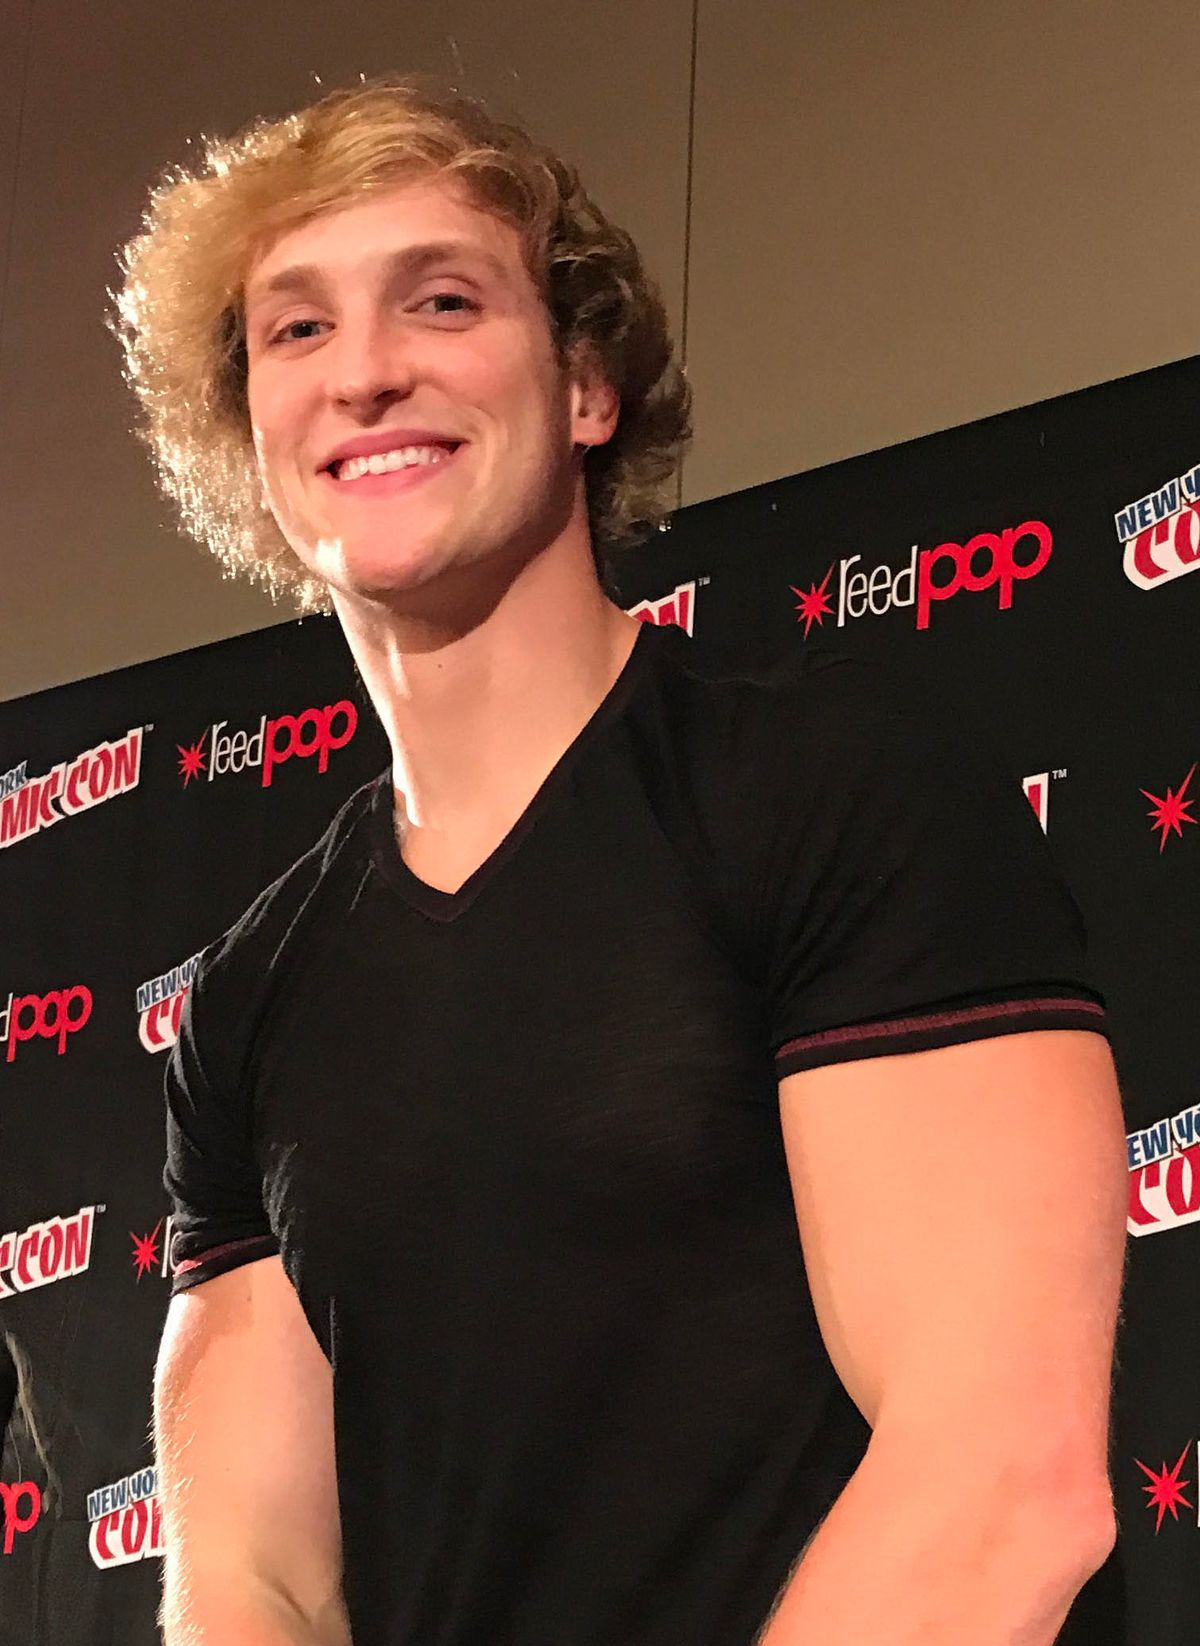 Logan Paul, I Will Not Defend Your Actions